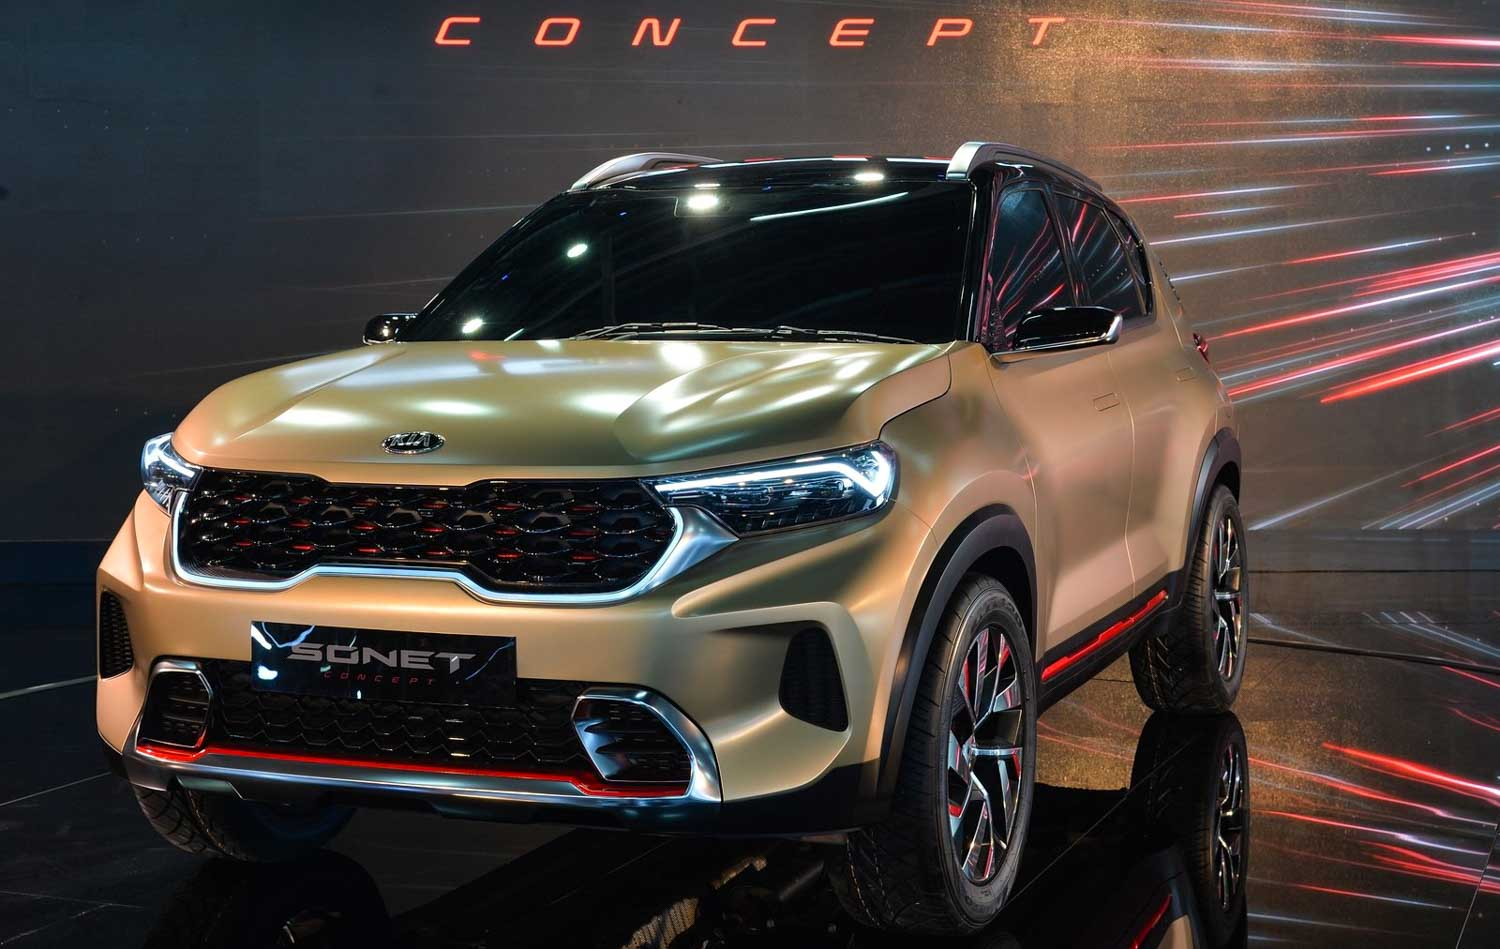 Upcoming Kia Sonet To Feature Clutchless Manual Transmission (AMT)